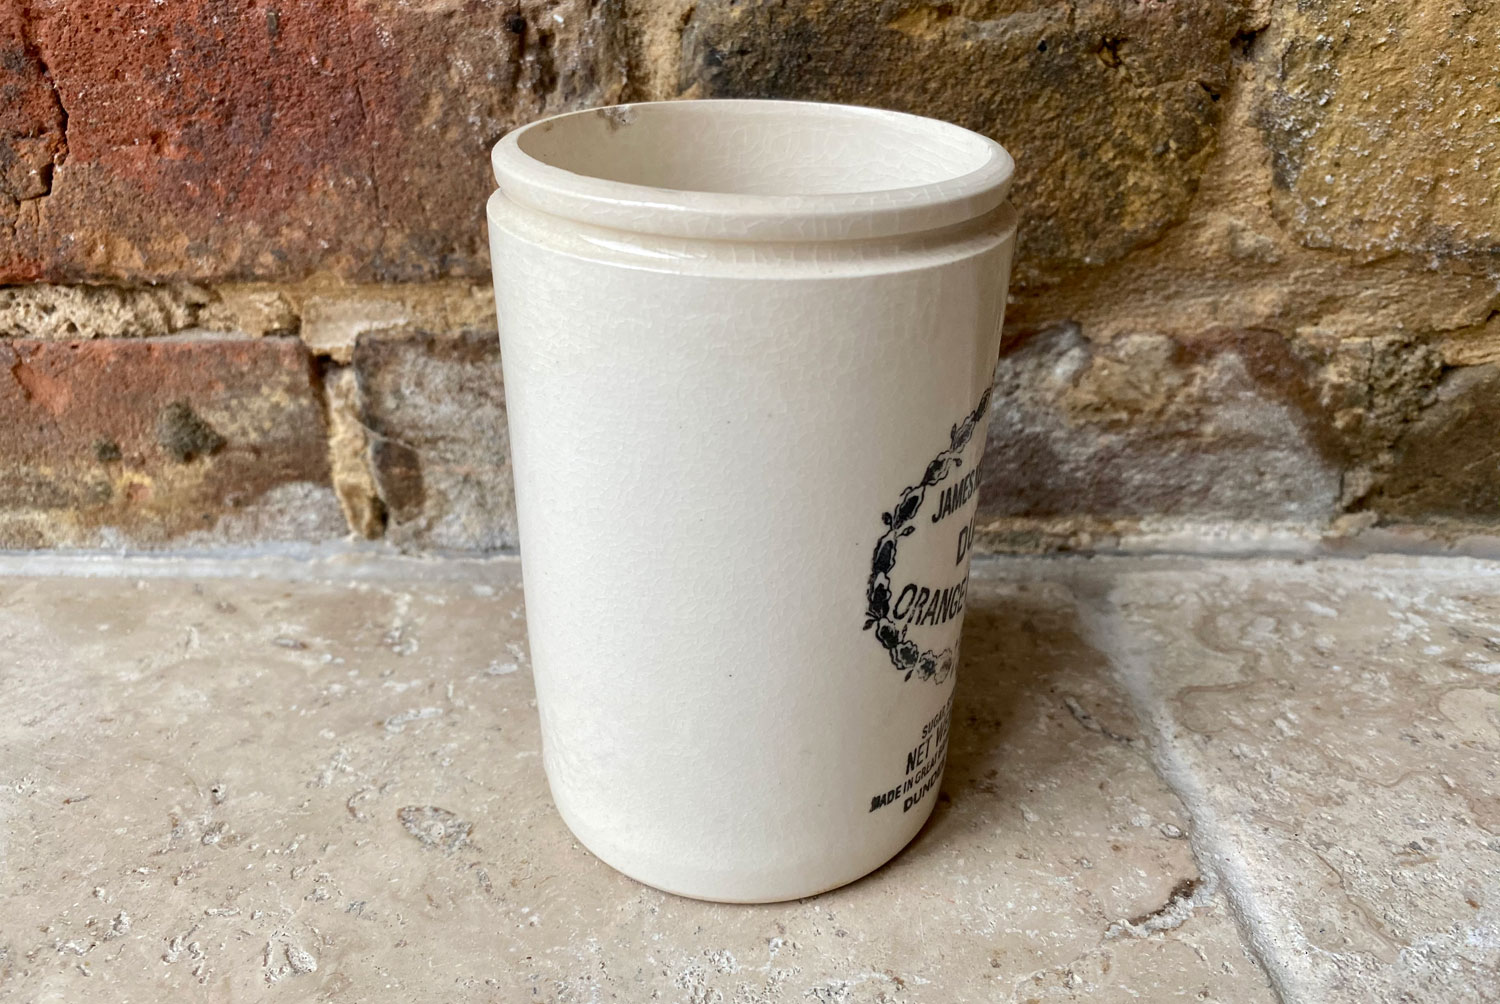 antique early 20th century white ironstone english advertising pot slim one pound james keiller dundee marmalade